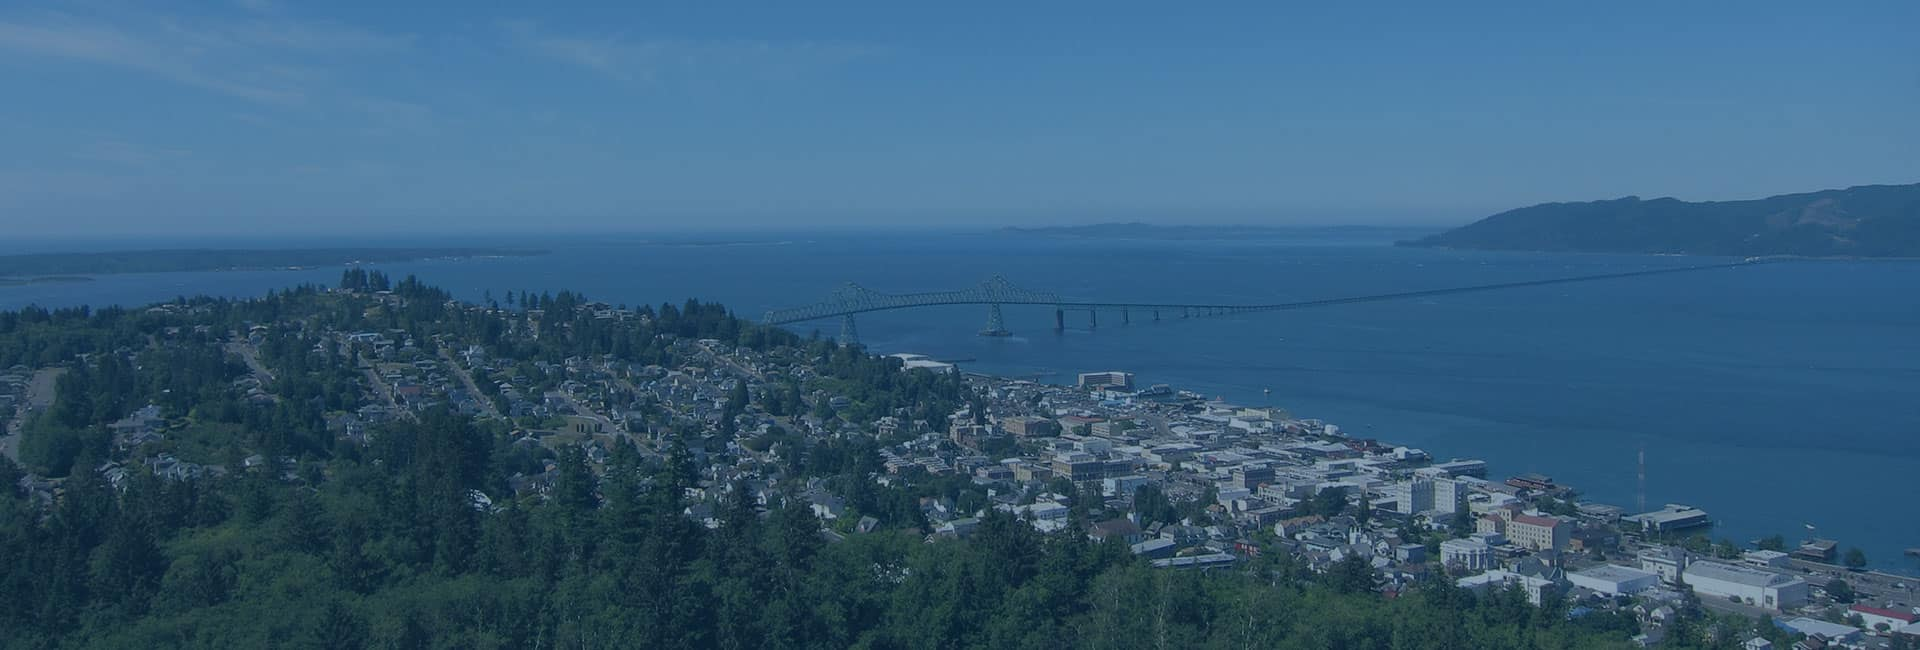 Case Study | Oregon Department of Environmental Quality